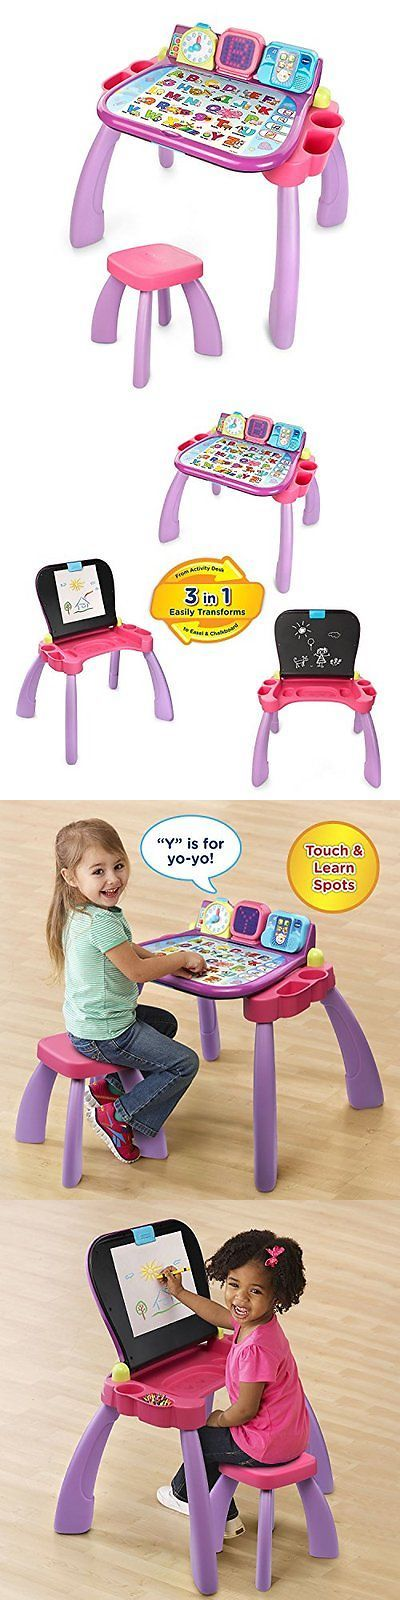 Learning Systems 158695: Vtech Touch And Electronic Learning Toys Learn Activity Desk - Purple - Online -> BUY IT NOW ONLY: $58.17 on eBay!